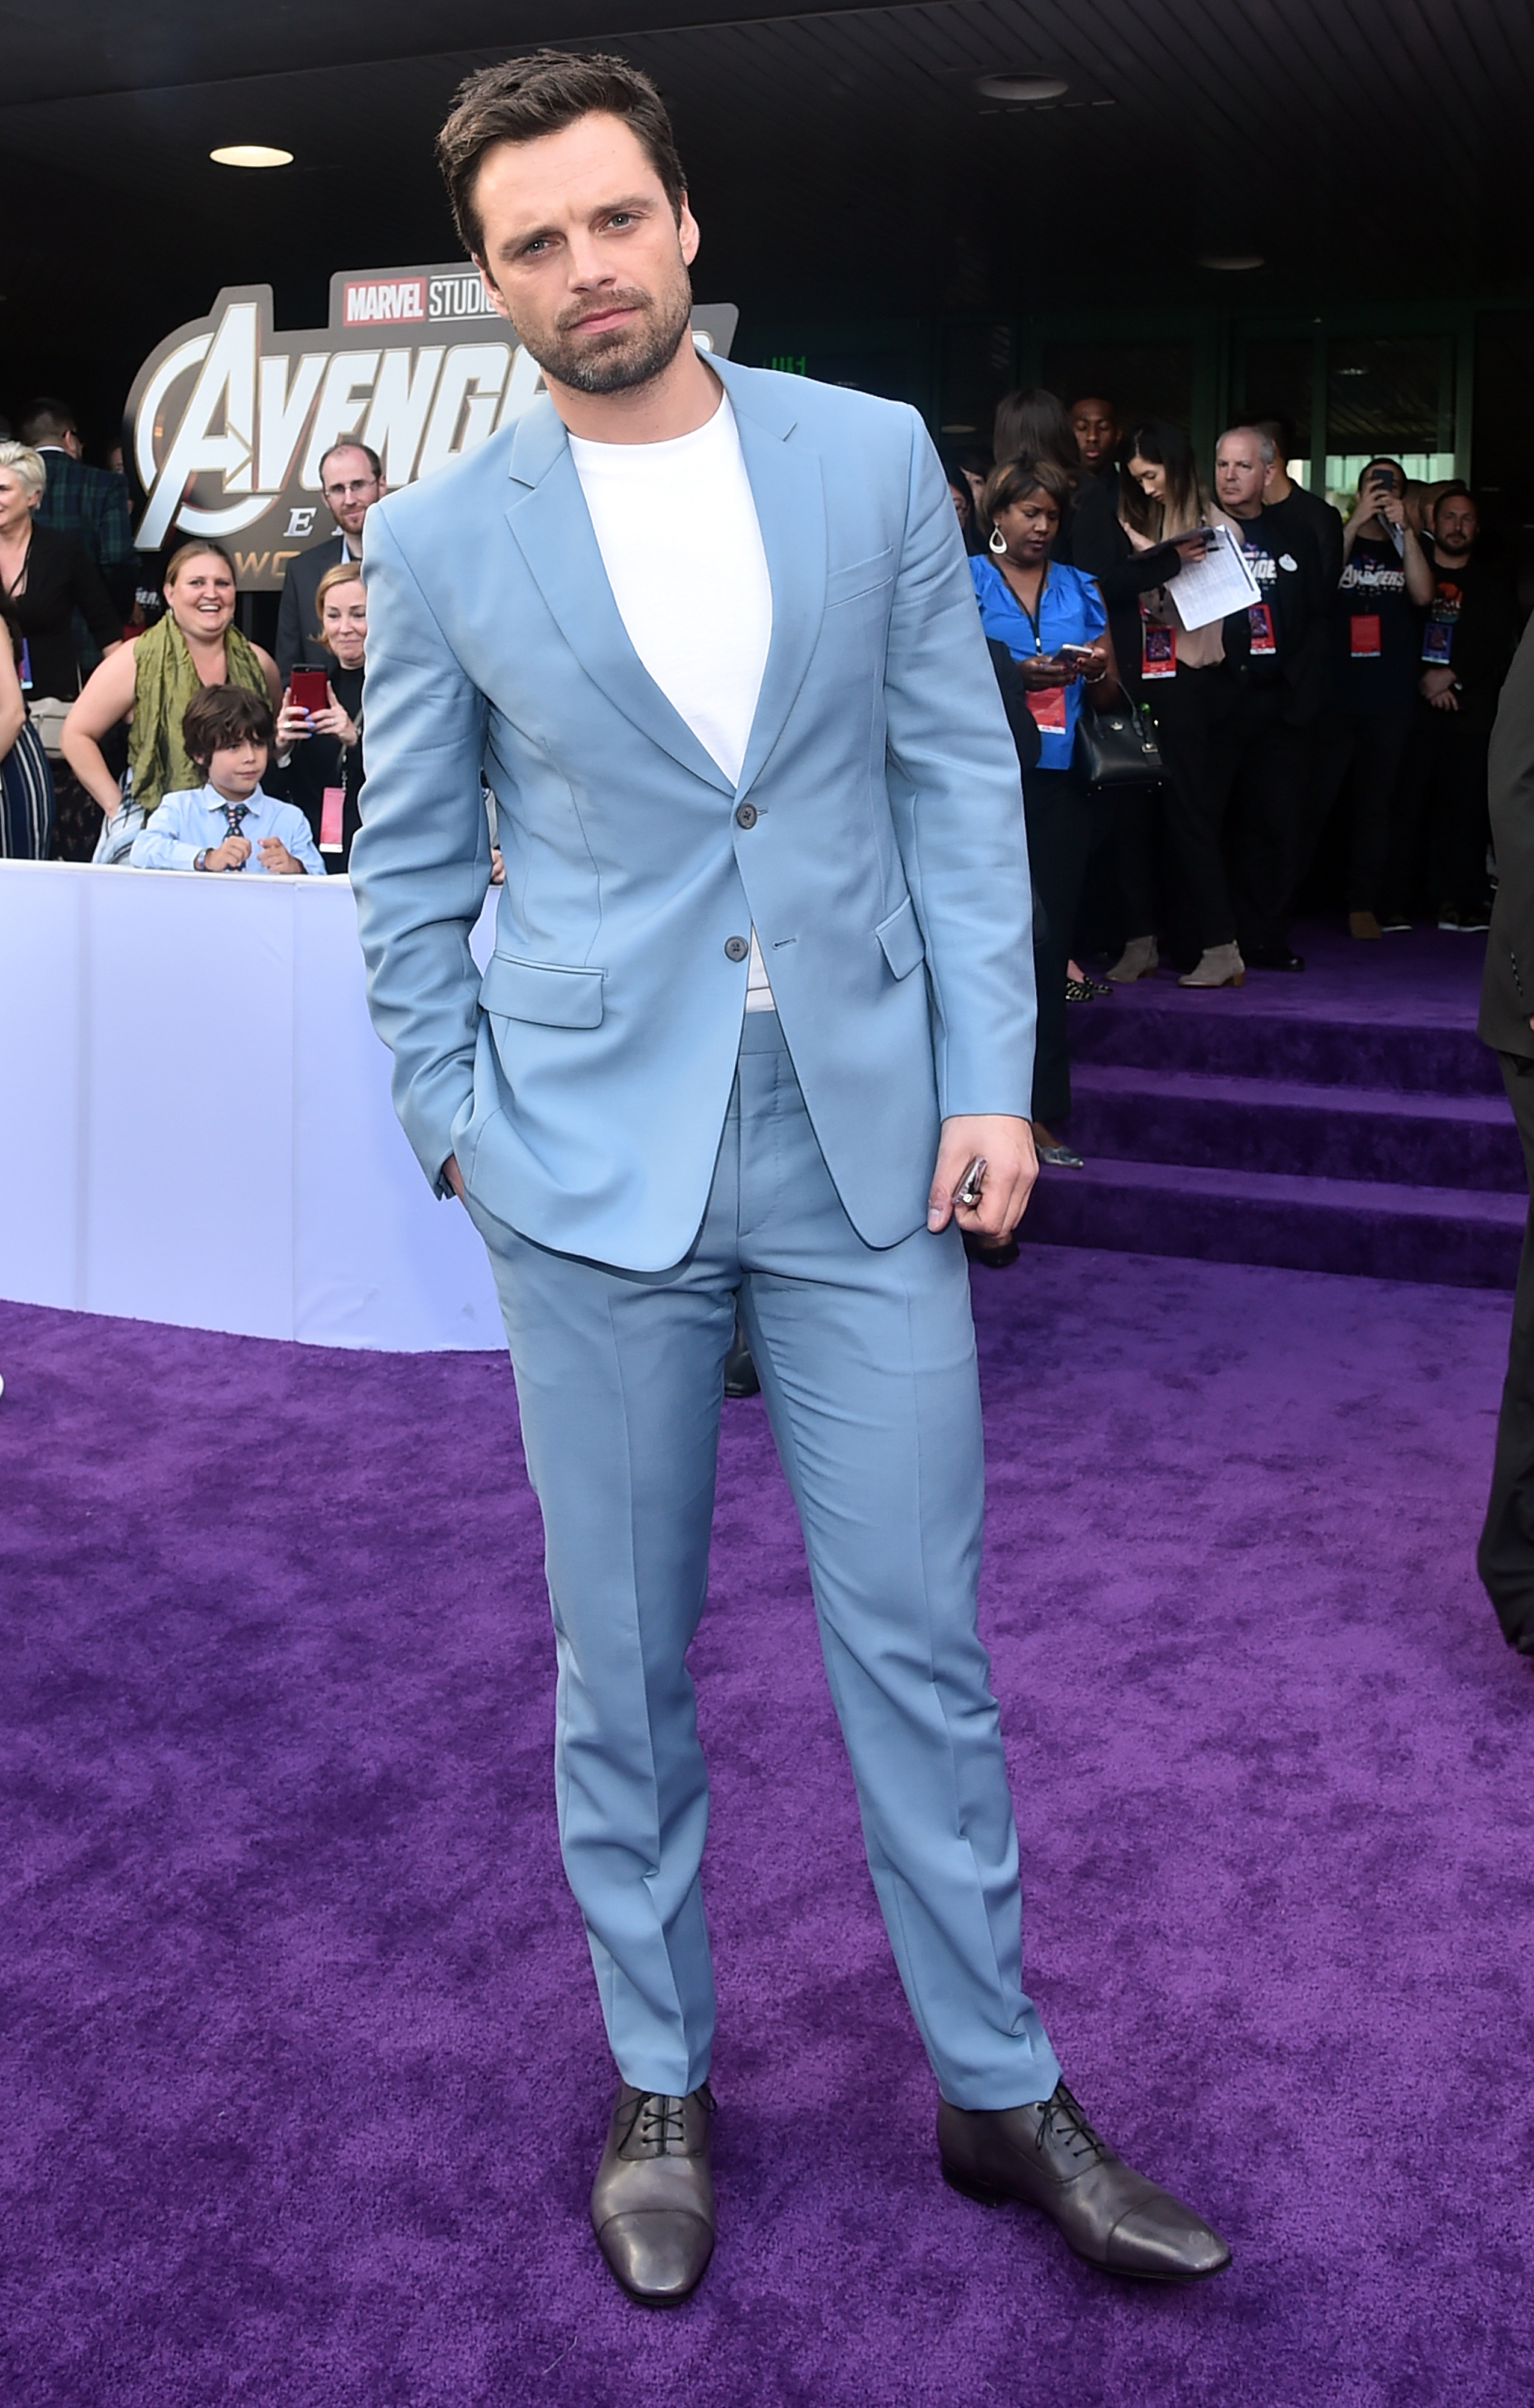 Marvel Studios Avengers Endgame World Premiere